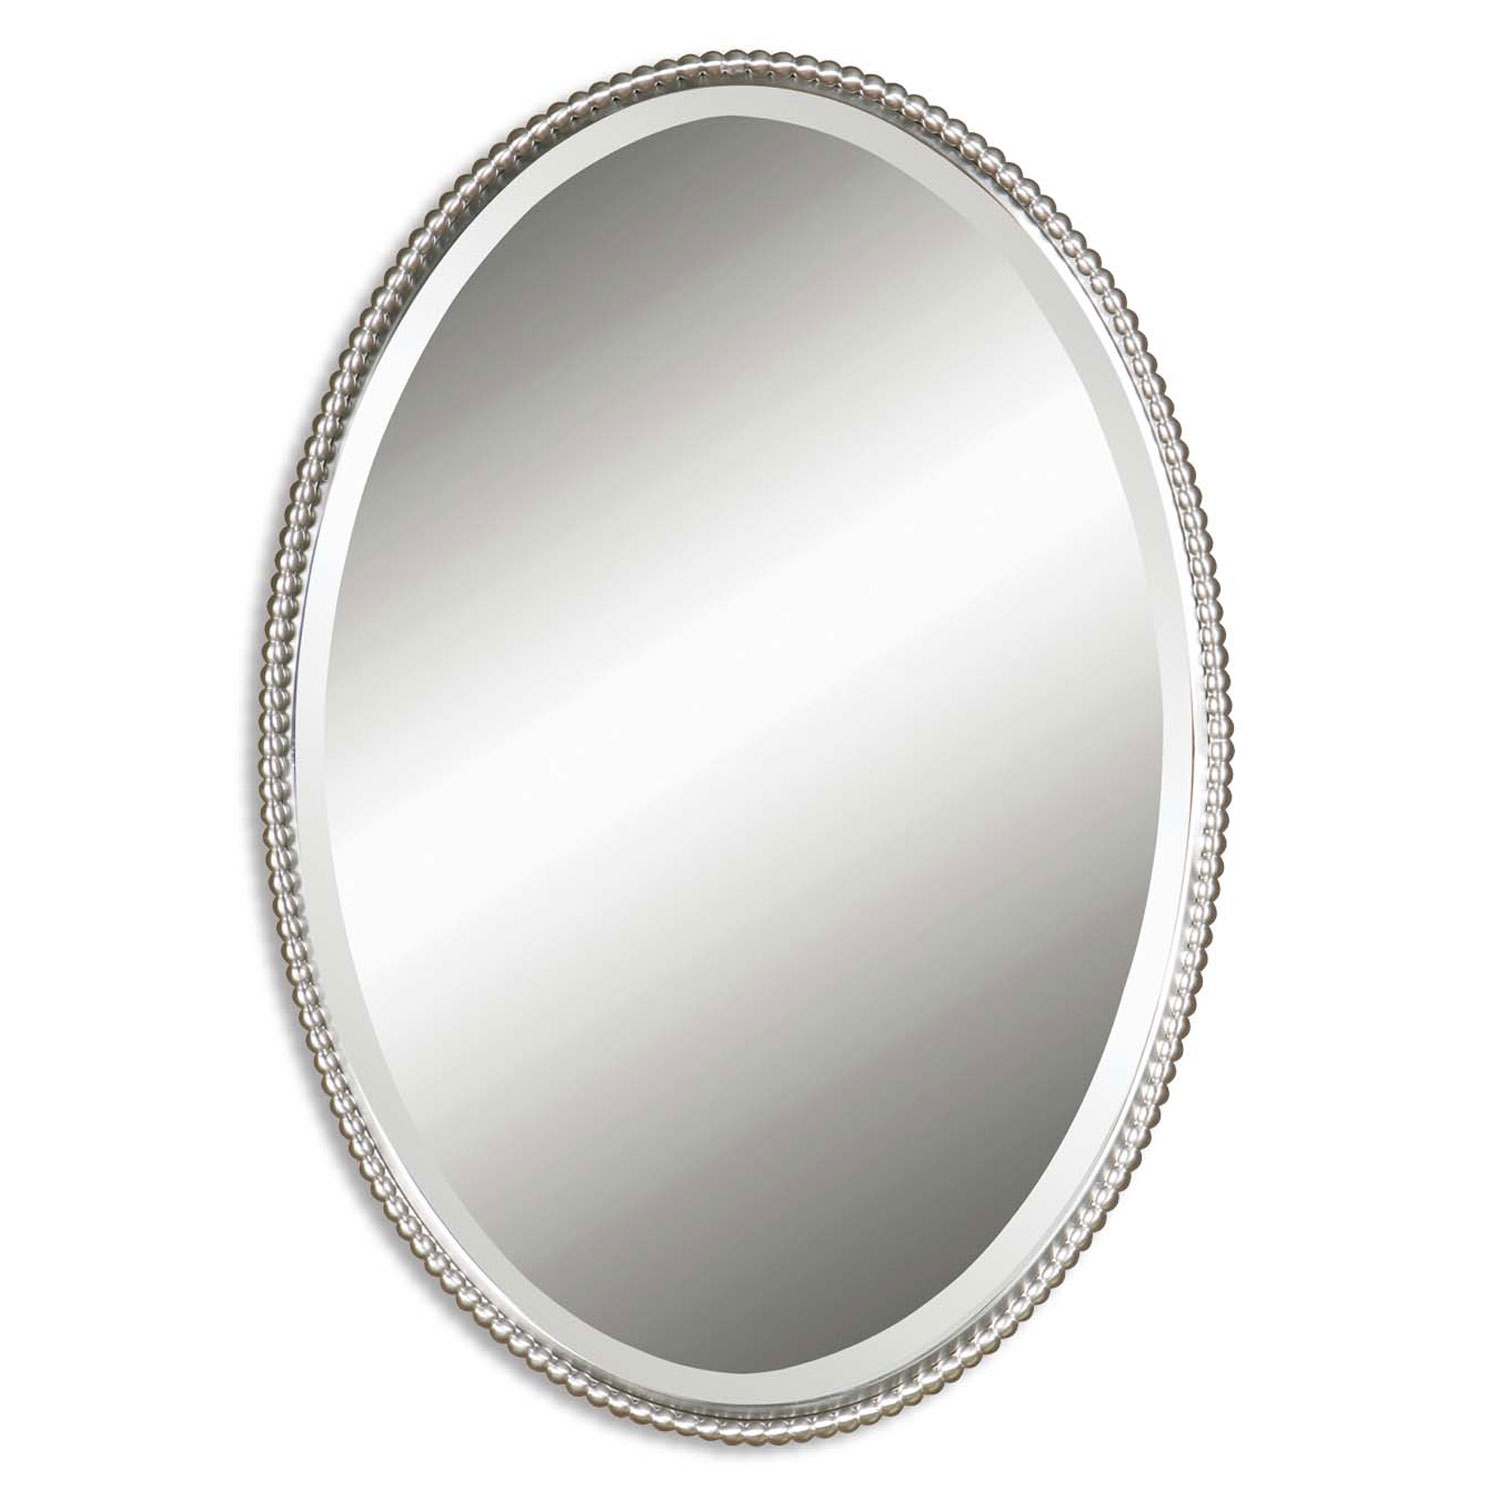 Wall Mirrors Bathroom Mirrors Bellacor Throughout Black Oval Wall Mirror (Image 14 of 15)